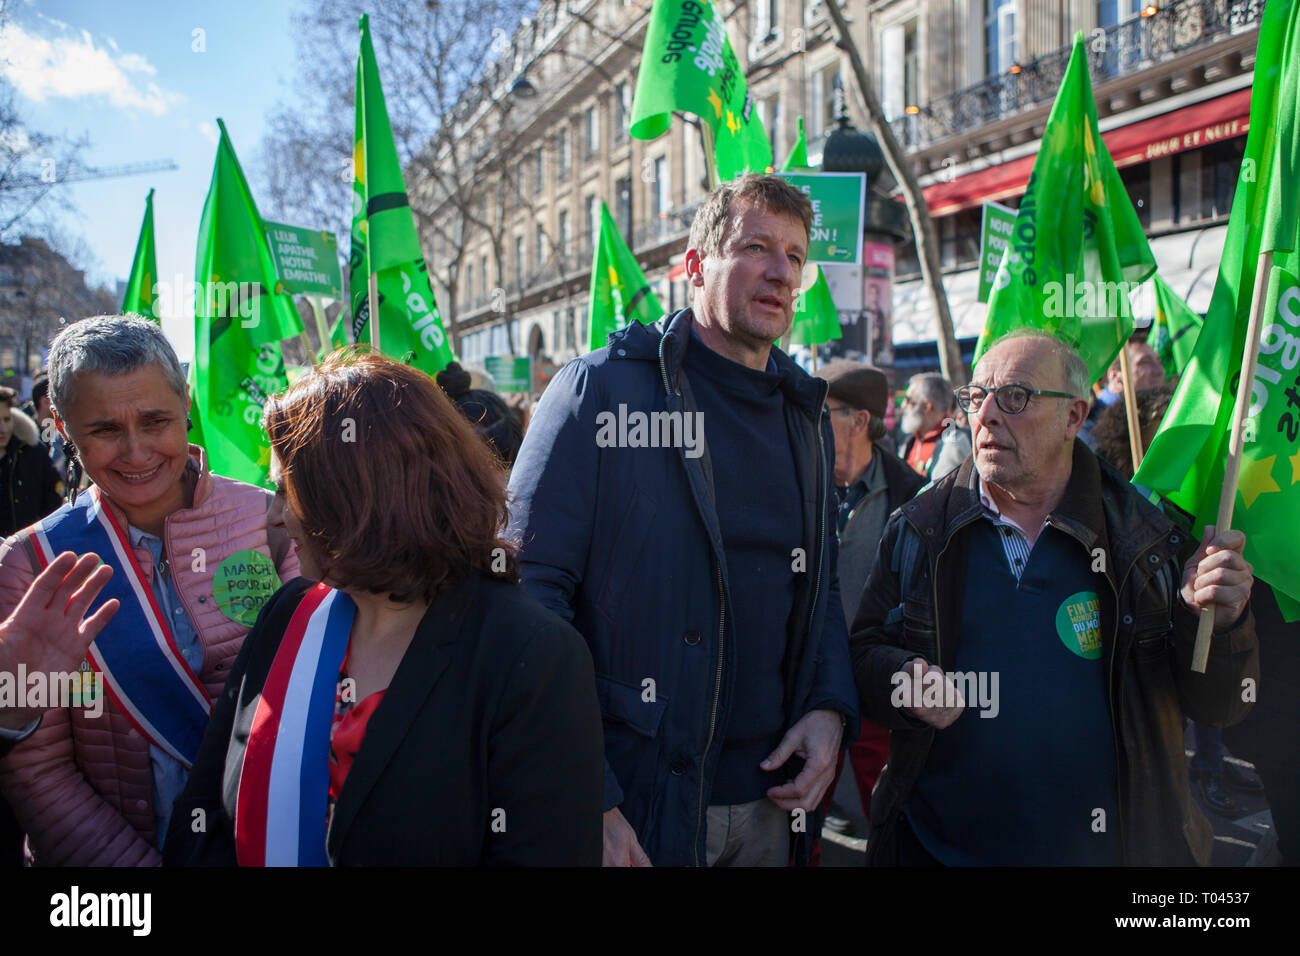 They had dubbed it the 'March of the Century,' it was historic. Saturday, March 16, 50,000 people demonstrated in PARIS to fight against climate chang - Stock Image